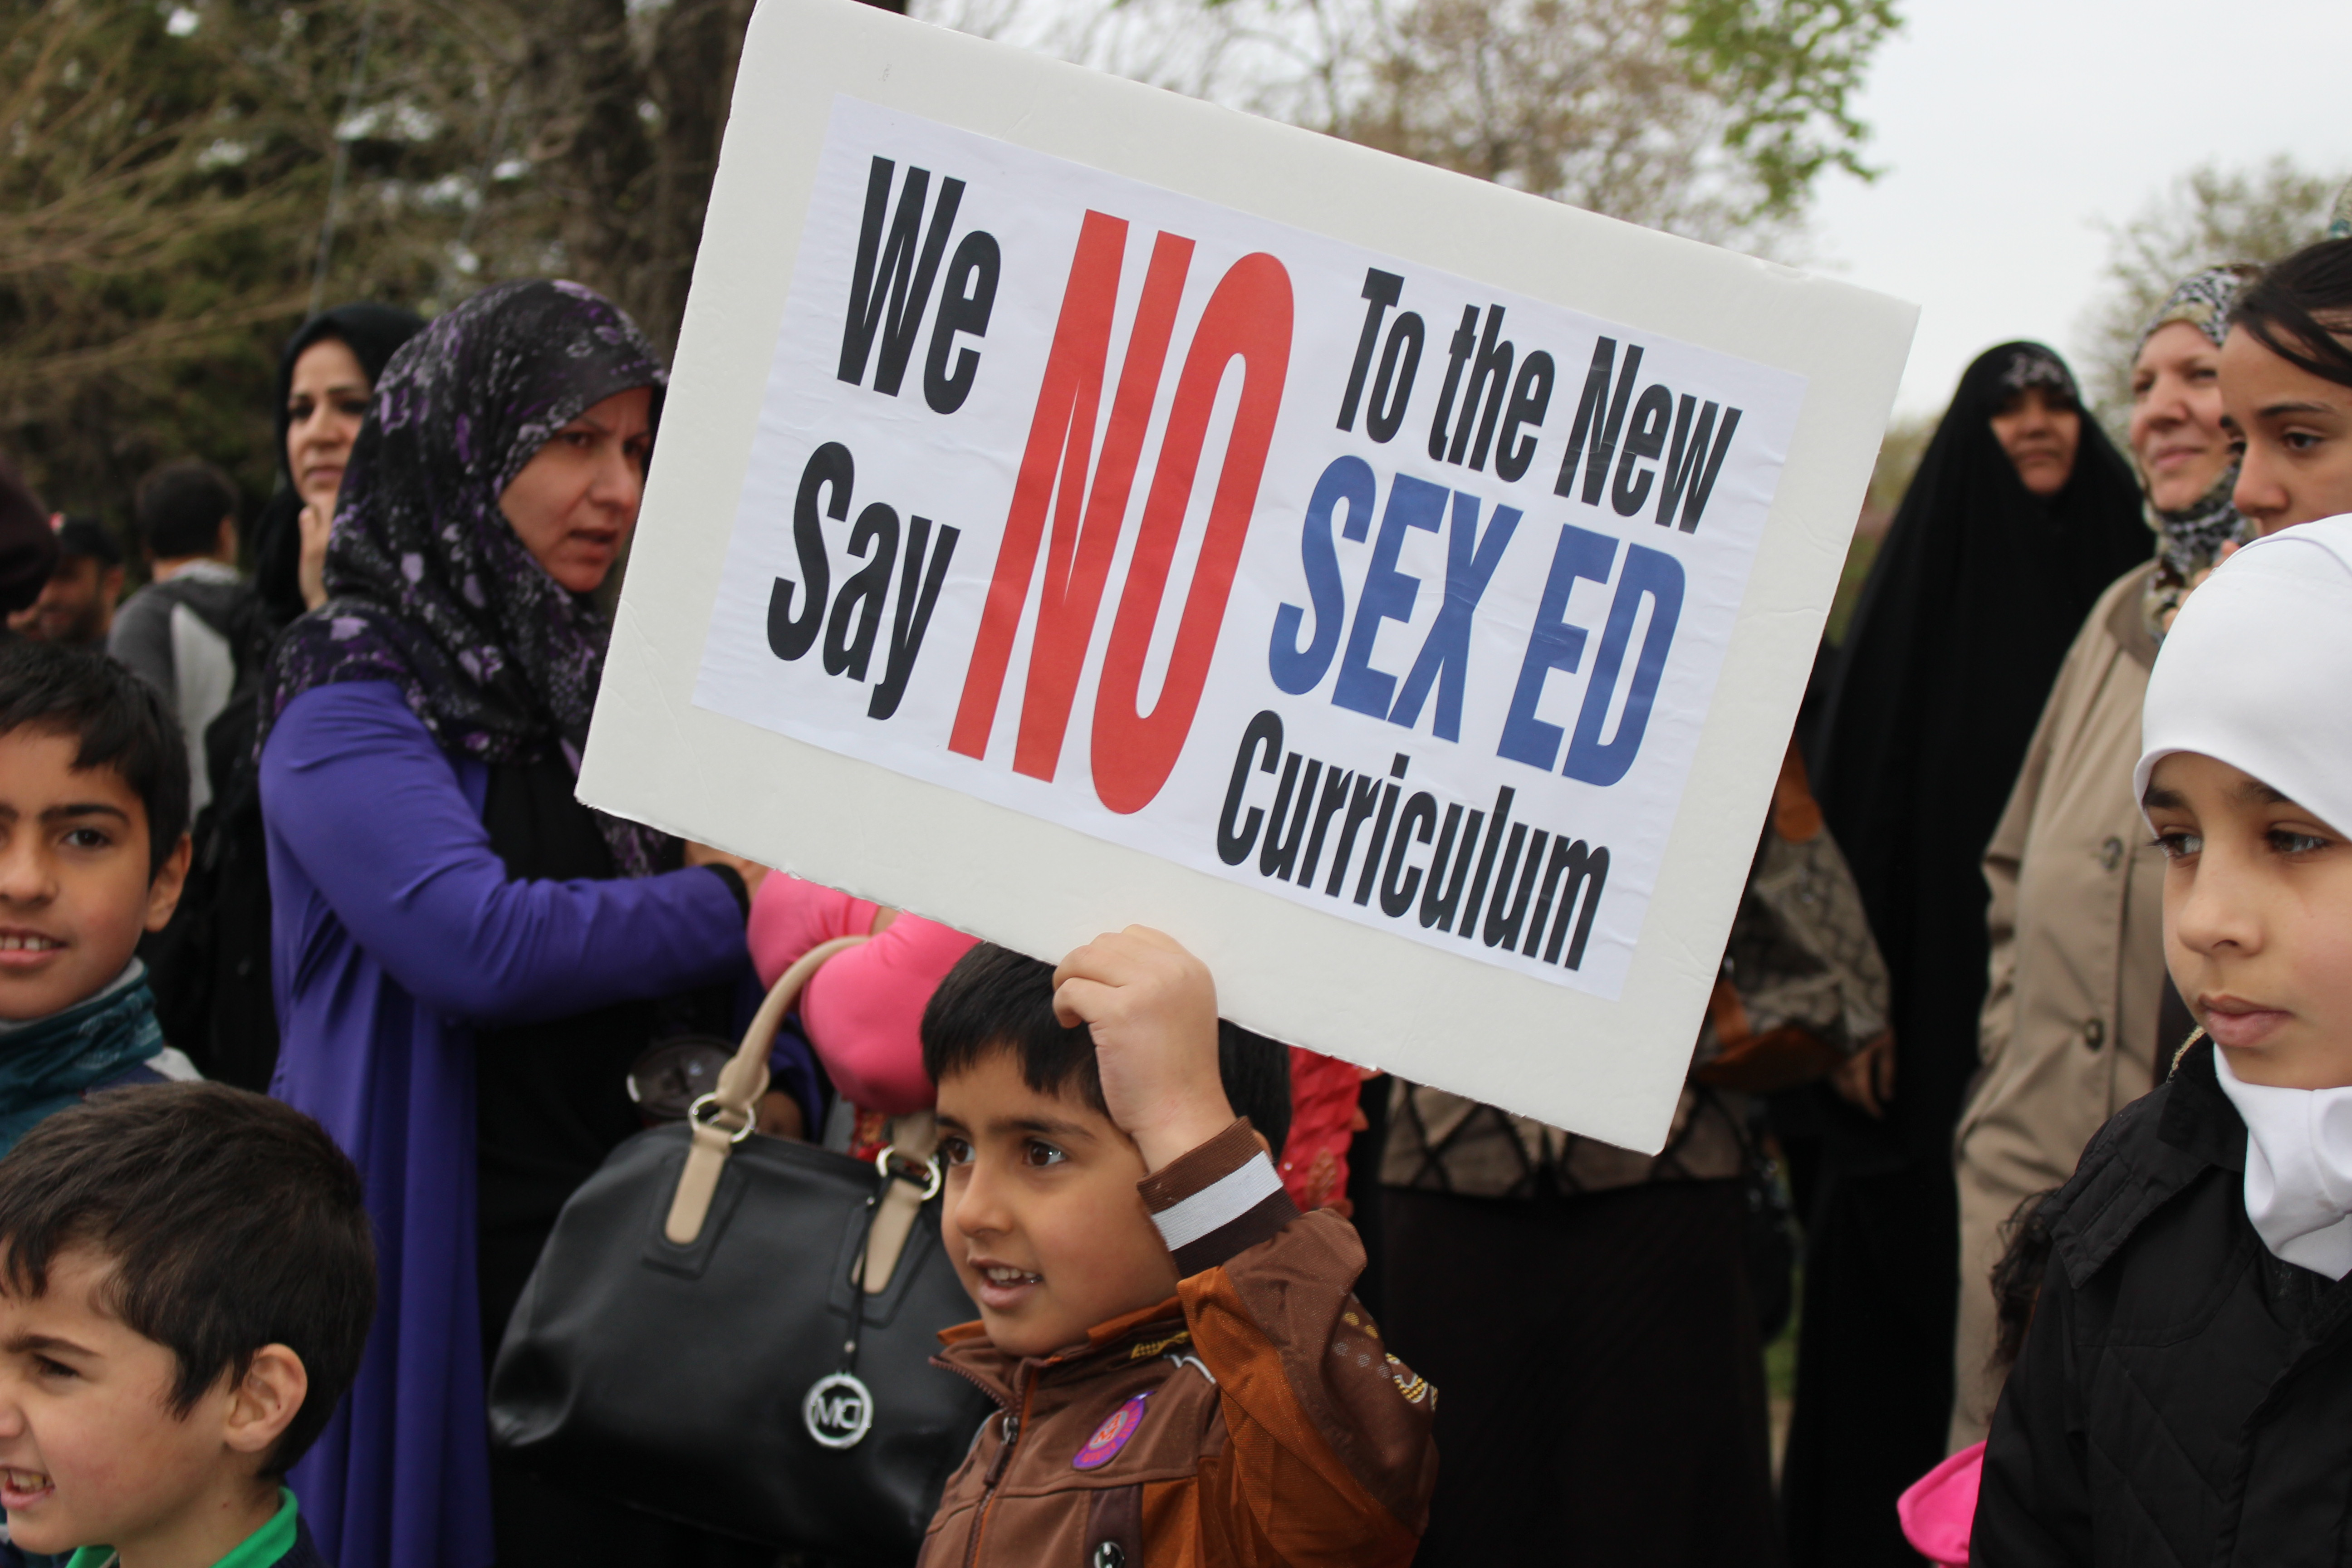 Protesters demonstrate against Ontario's new sex education curriculum outside Northwood Public School May 5, 2015. (Photo by Adelle Loiselle)